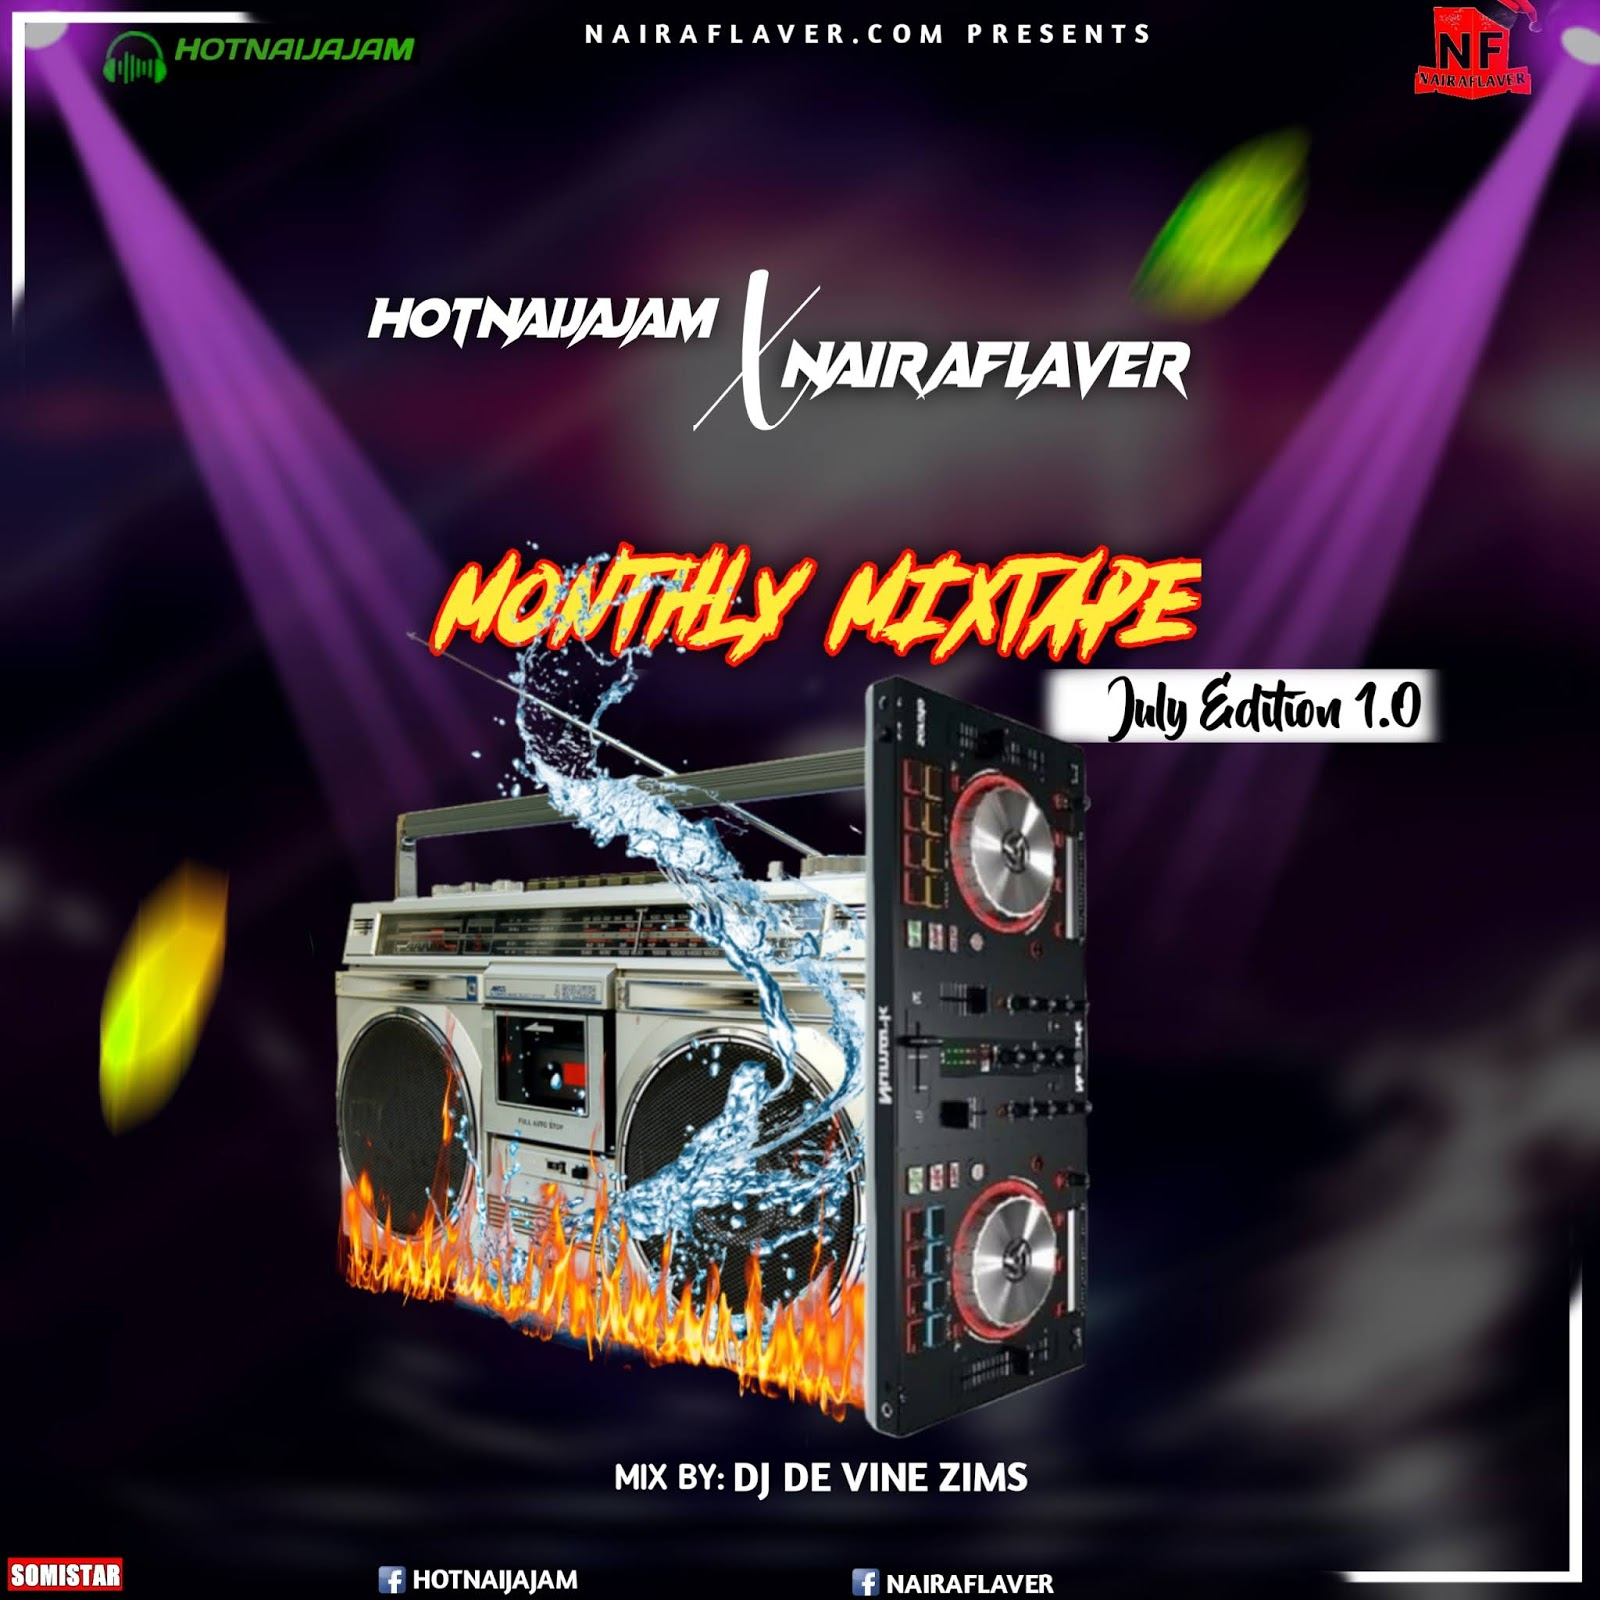 [Mixtape]: Nairaflaver – July Monthly Mixtape V1.0